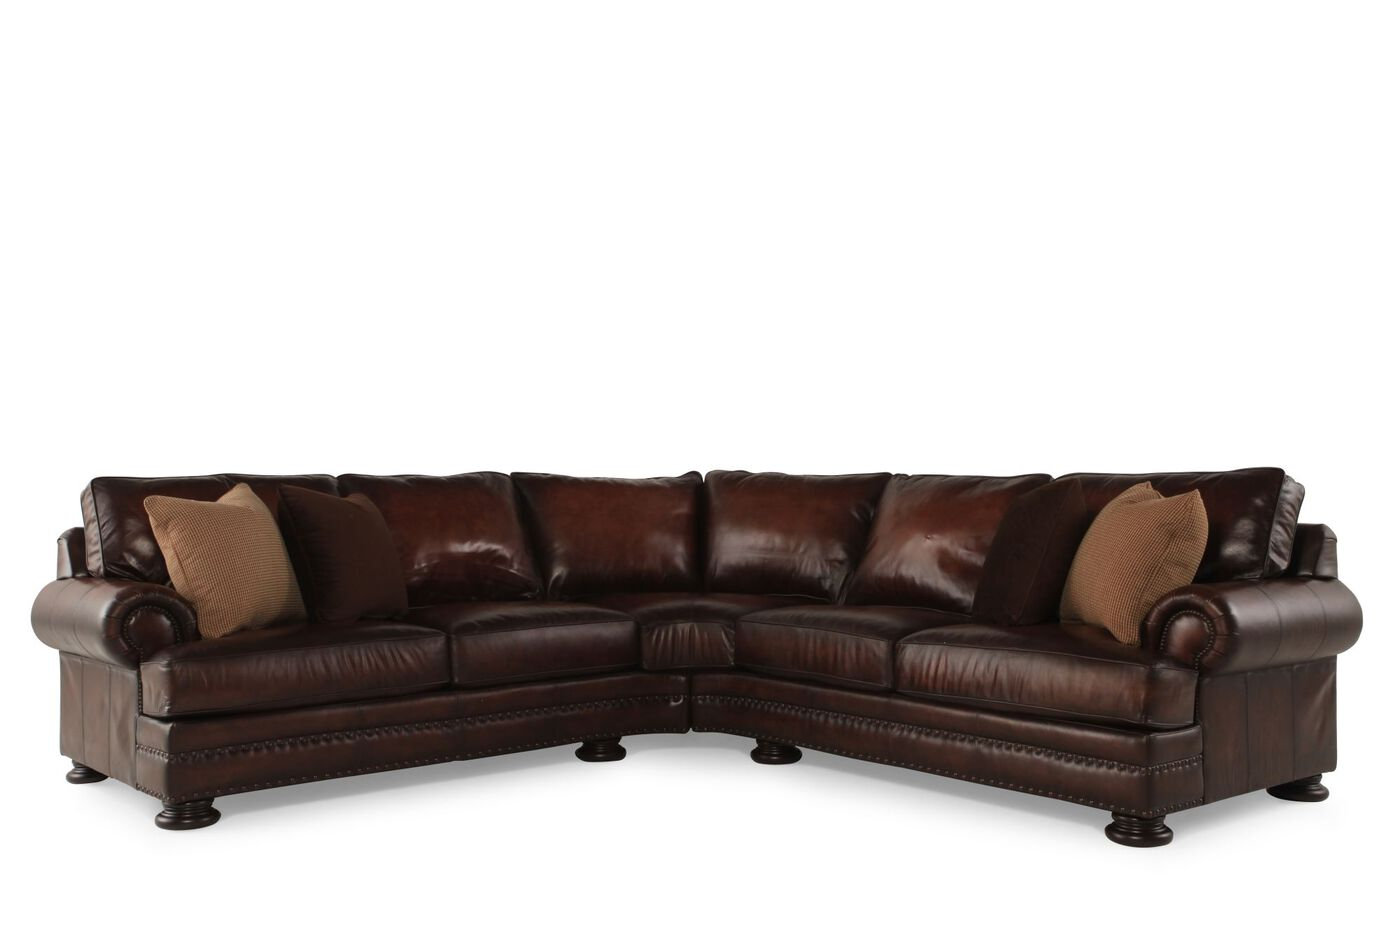 Bernhardt foster leather sectional mathis brothers furniture for Bernhardt furniture